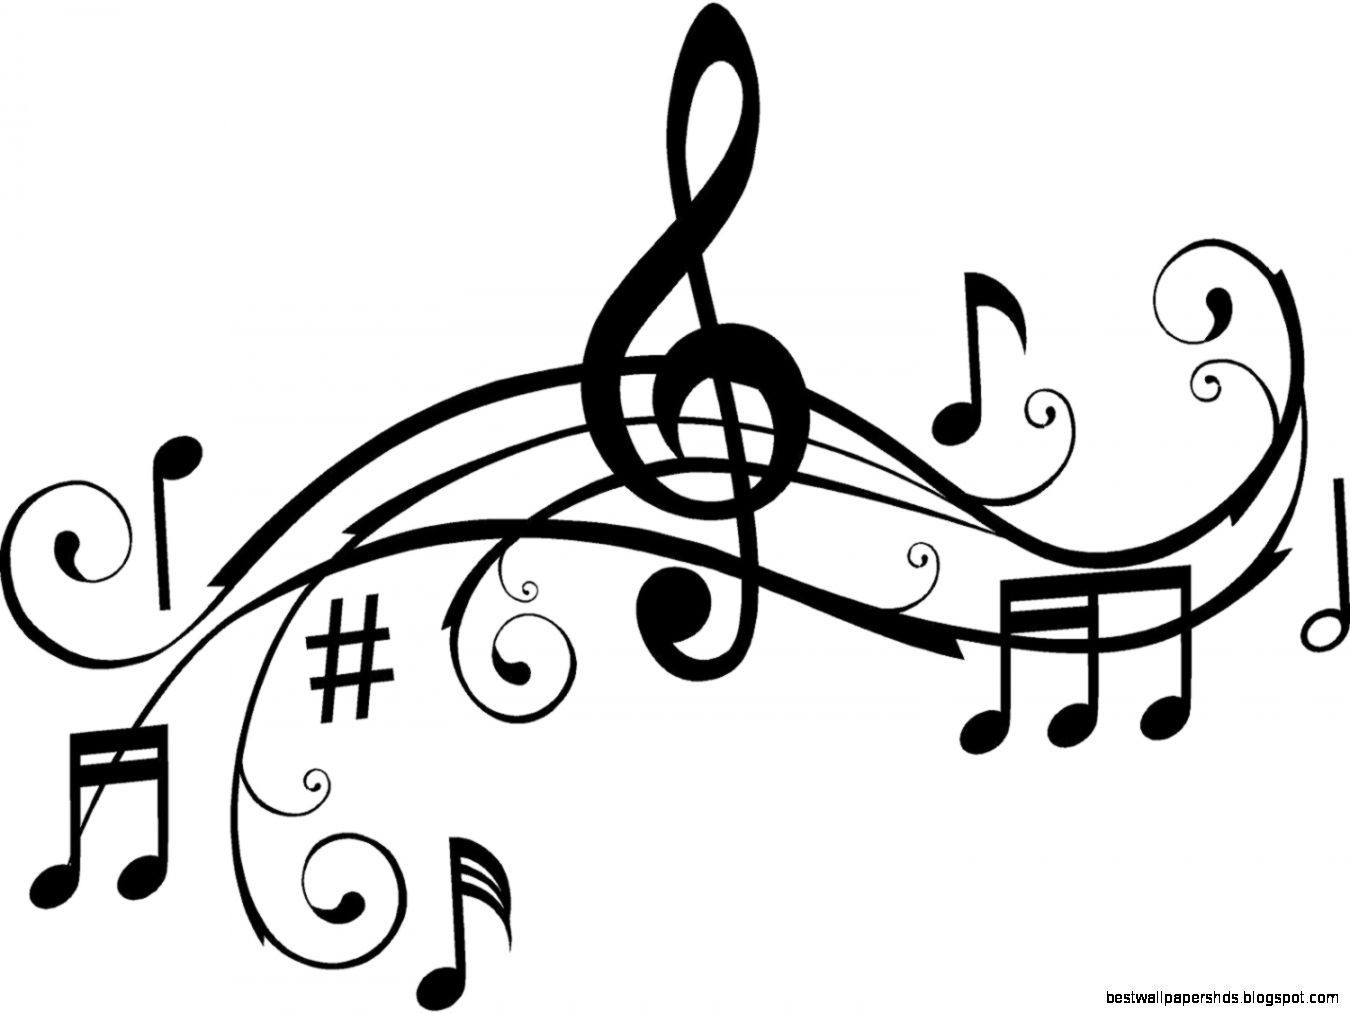 music notes clipart black and white clipart panda free clipart [ 1350 x 1013 Pixel ]